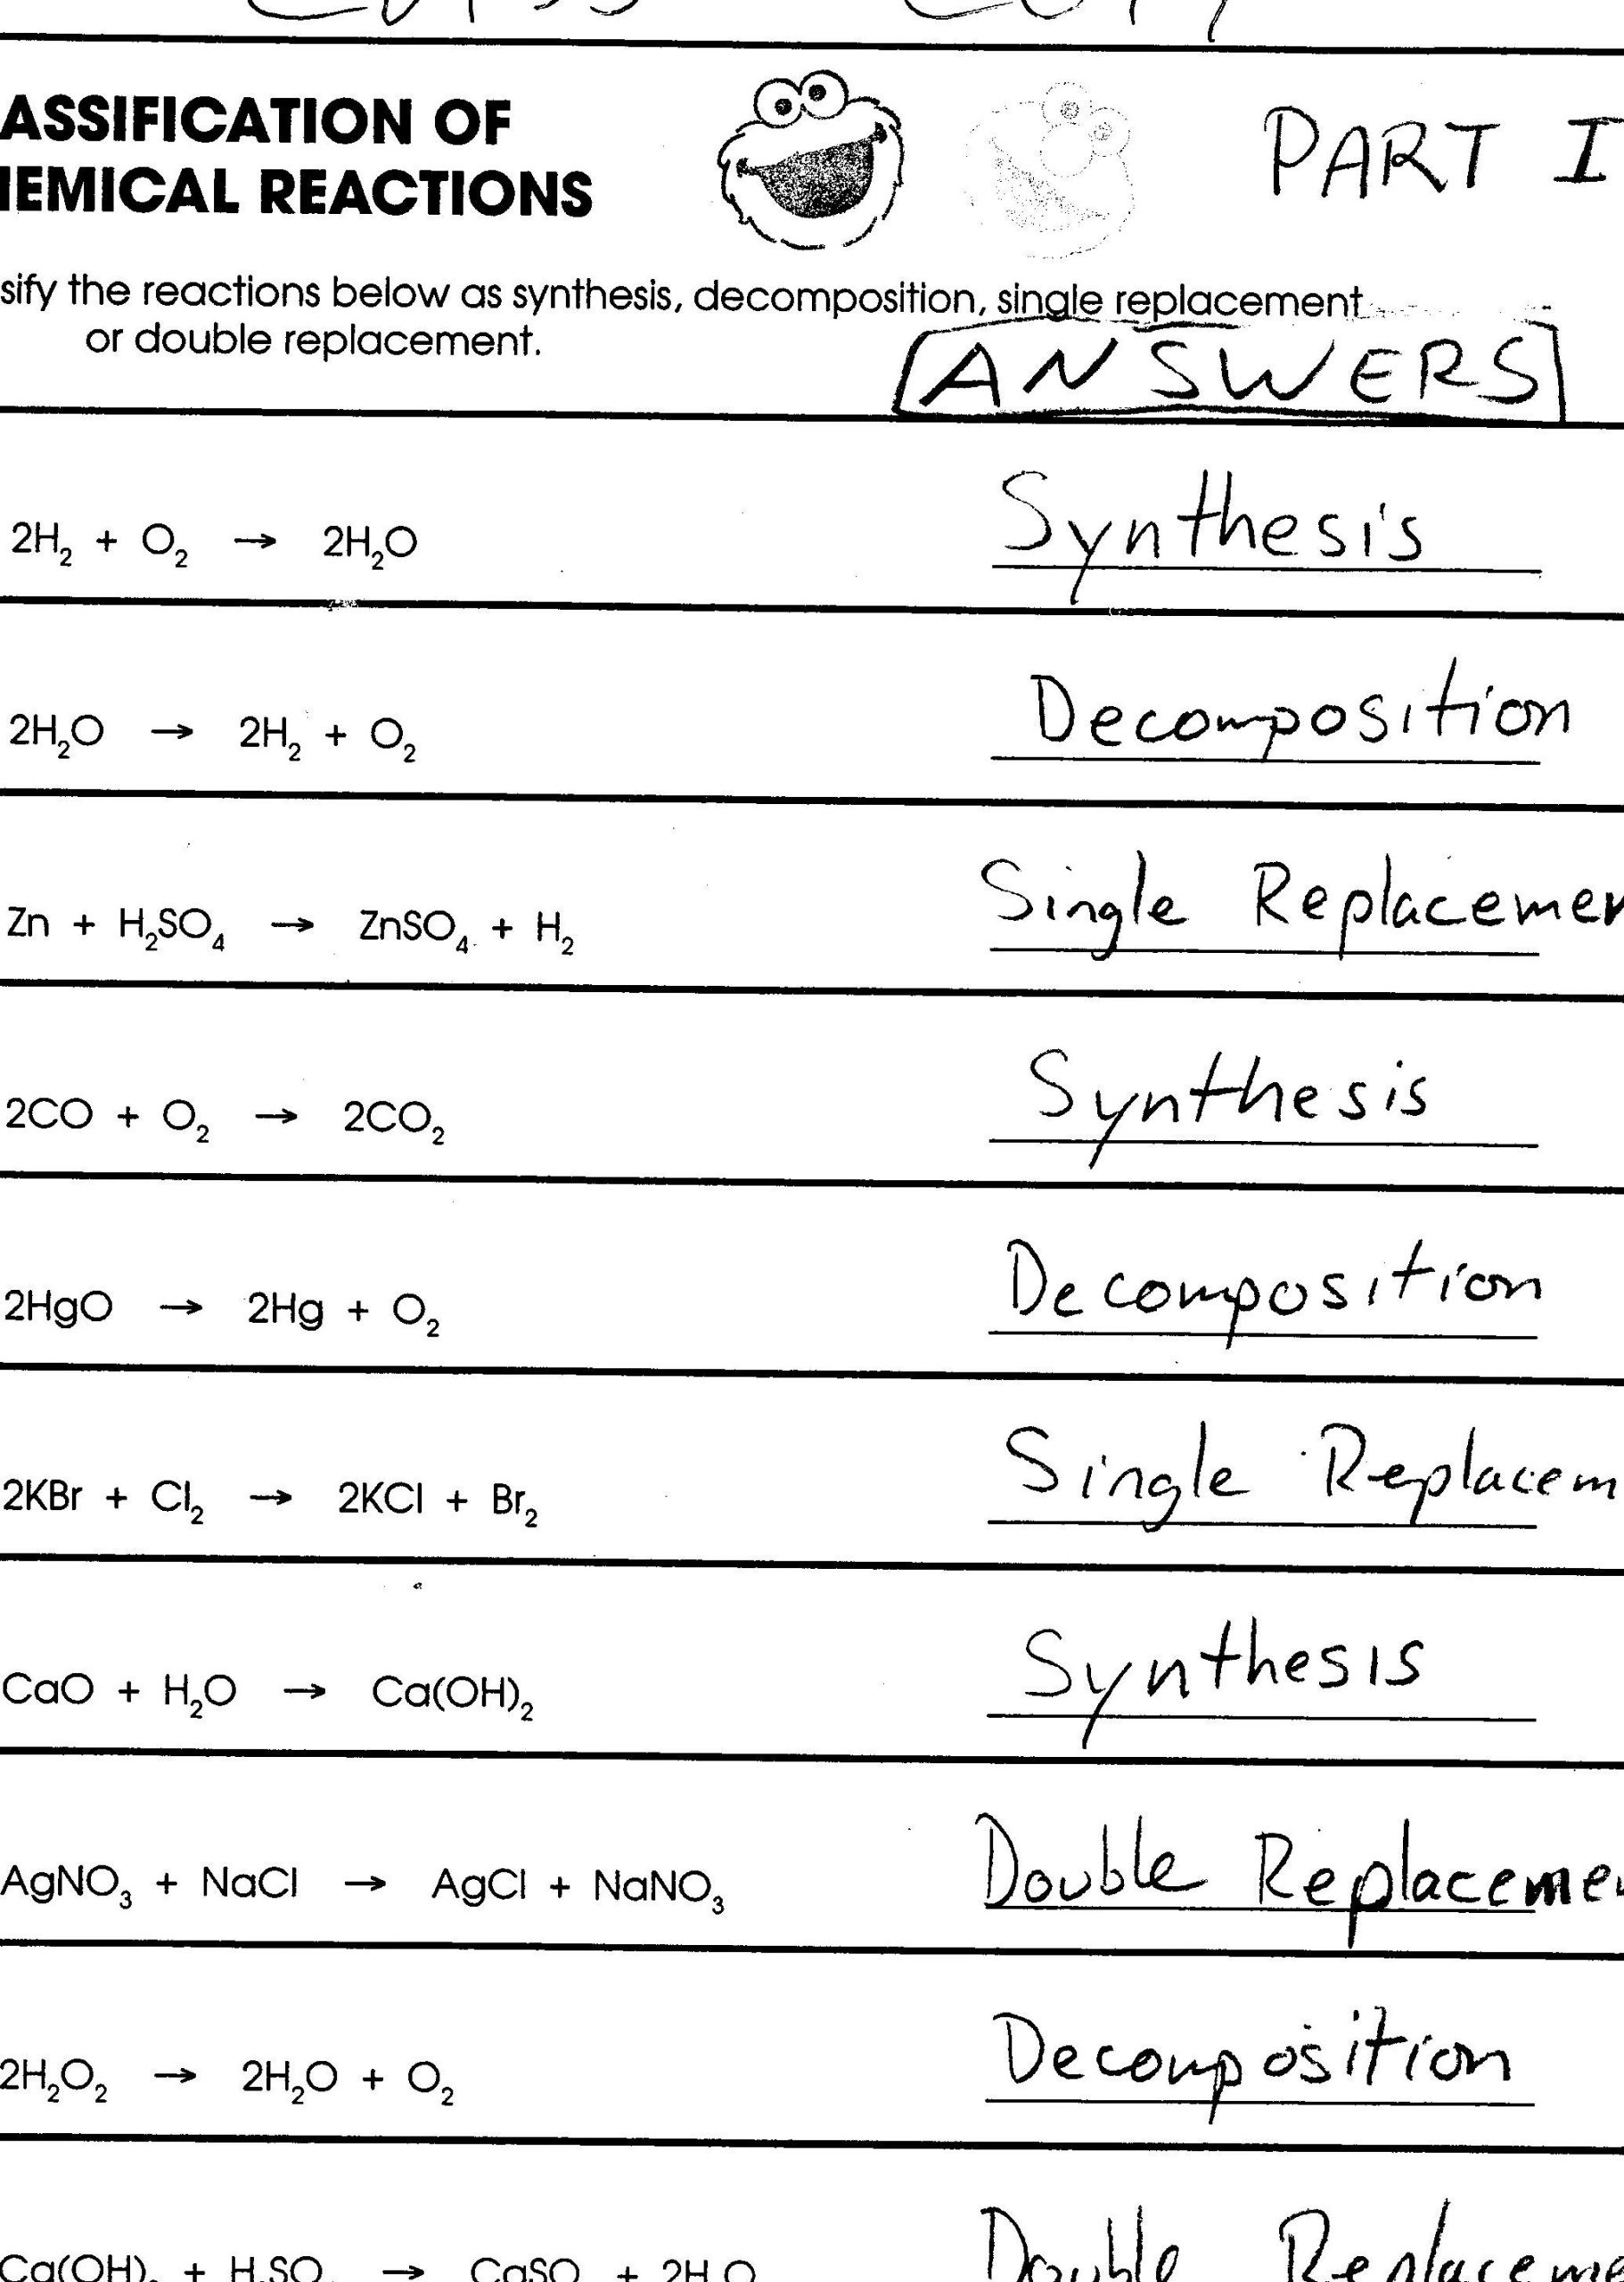 Osmosis and tonicity Worksheet 10 Classifying Chemical Reactions Worksheet Answers